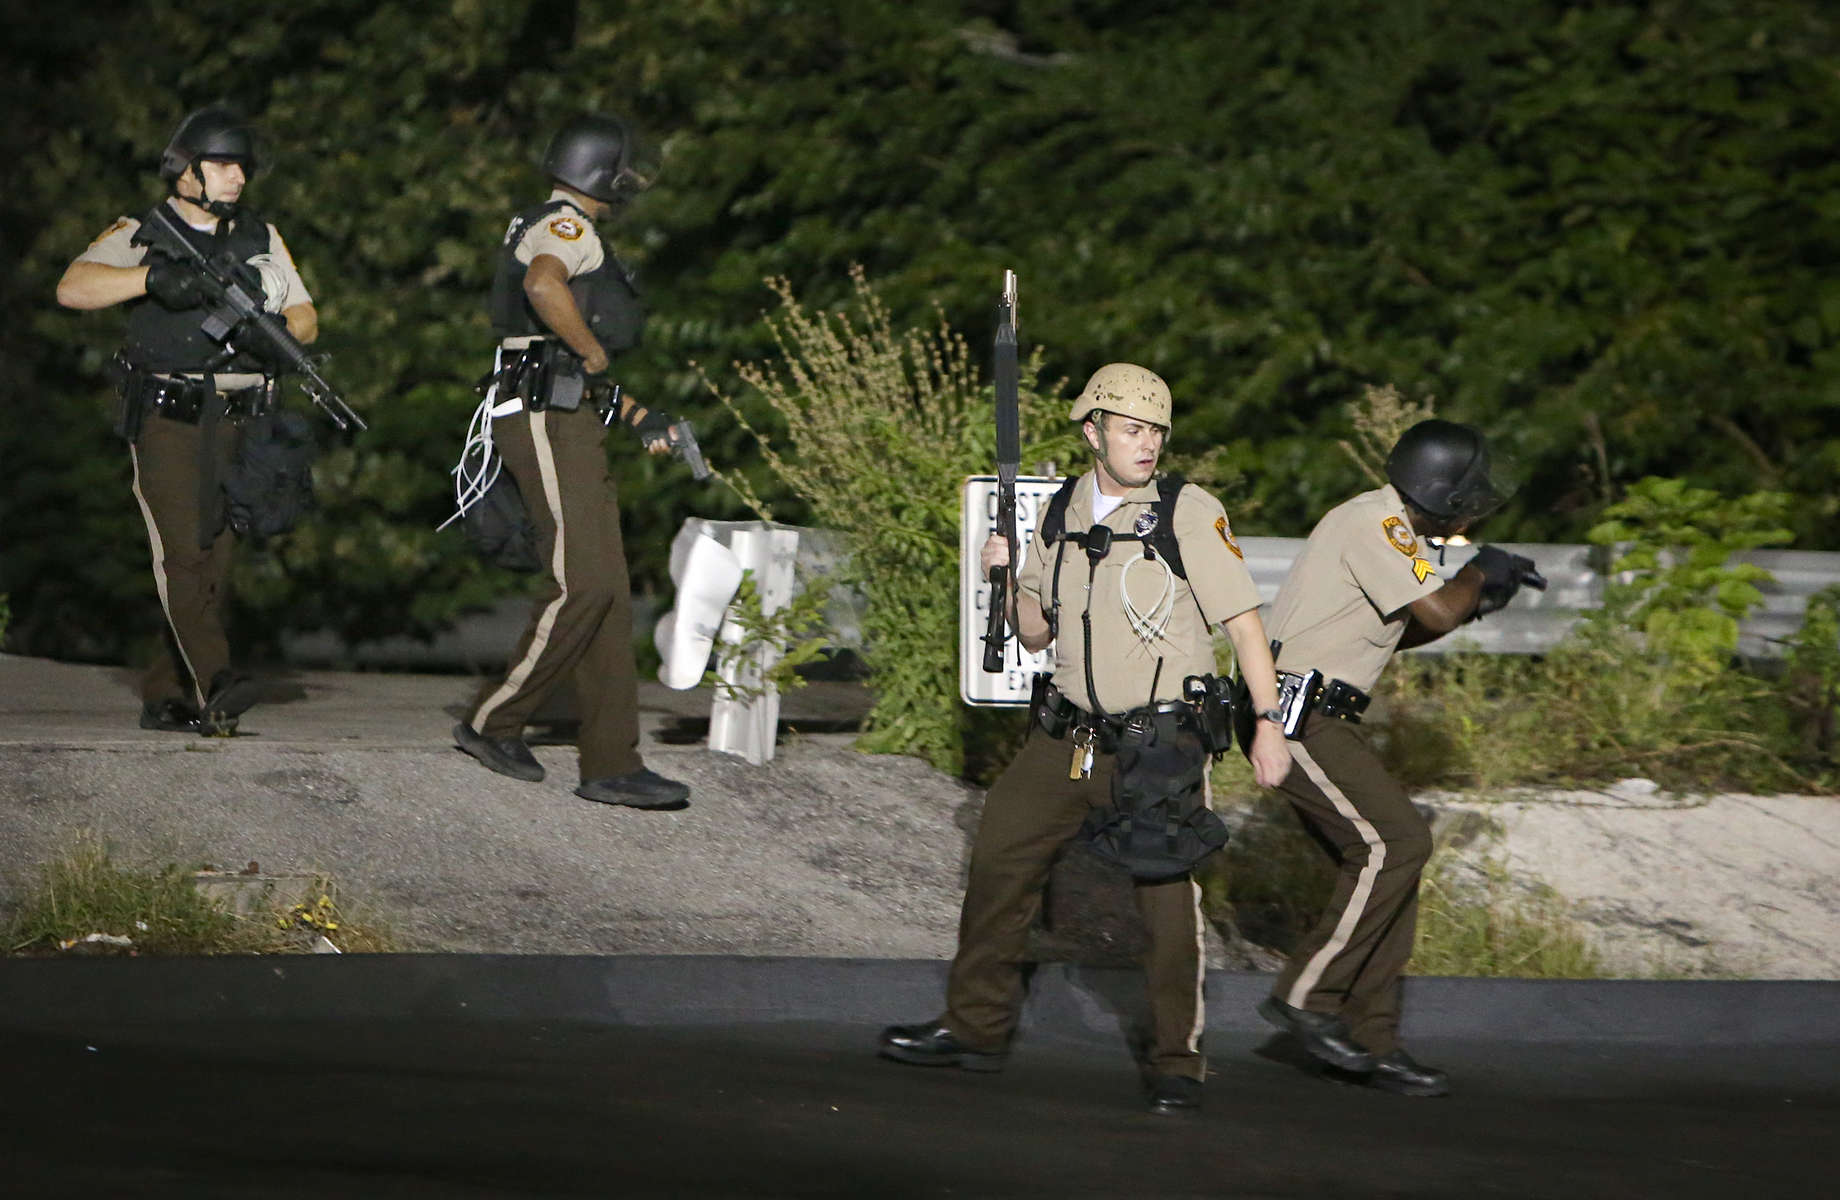 St. Louis County police officers keep an eye out for two armed men as they search the woods for gunmen along W. Florissant Avenue in Ferguson, Mo. on Tuesday, Aug. 13, 2014. A short time earlier police shot and critically wounded a different armed man.